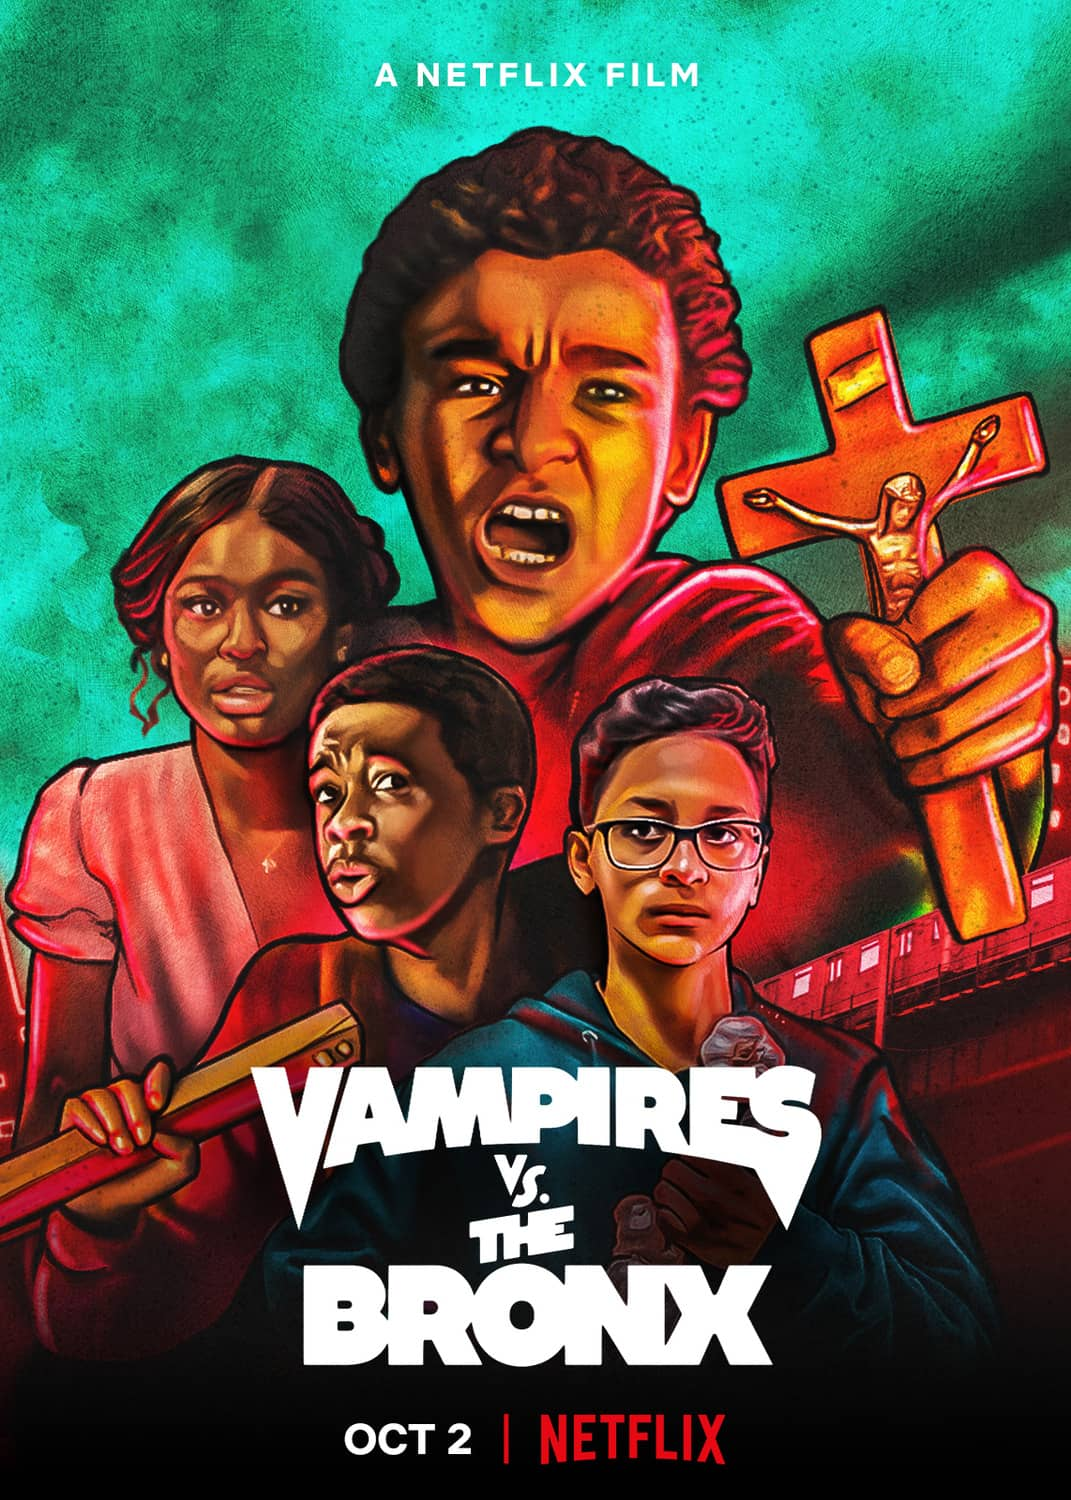 vampires_vs_the_bronx_poster_netflix